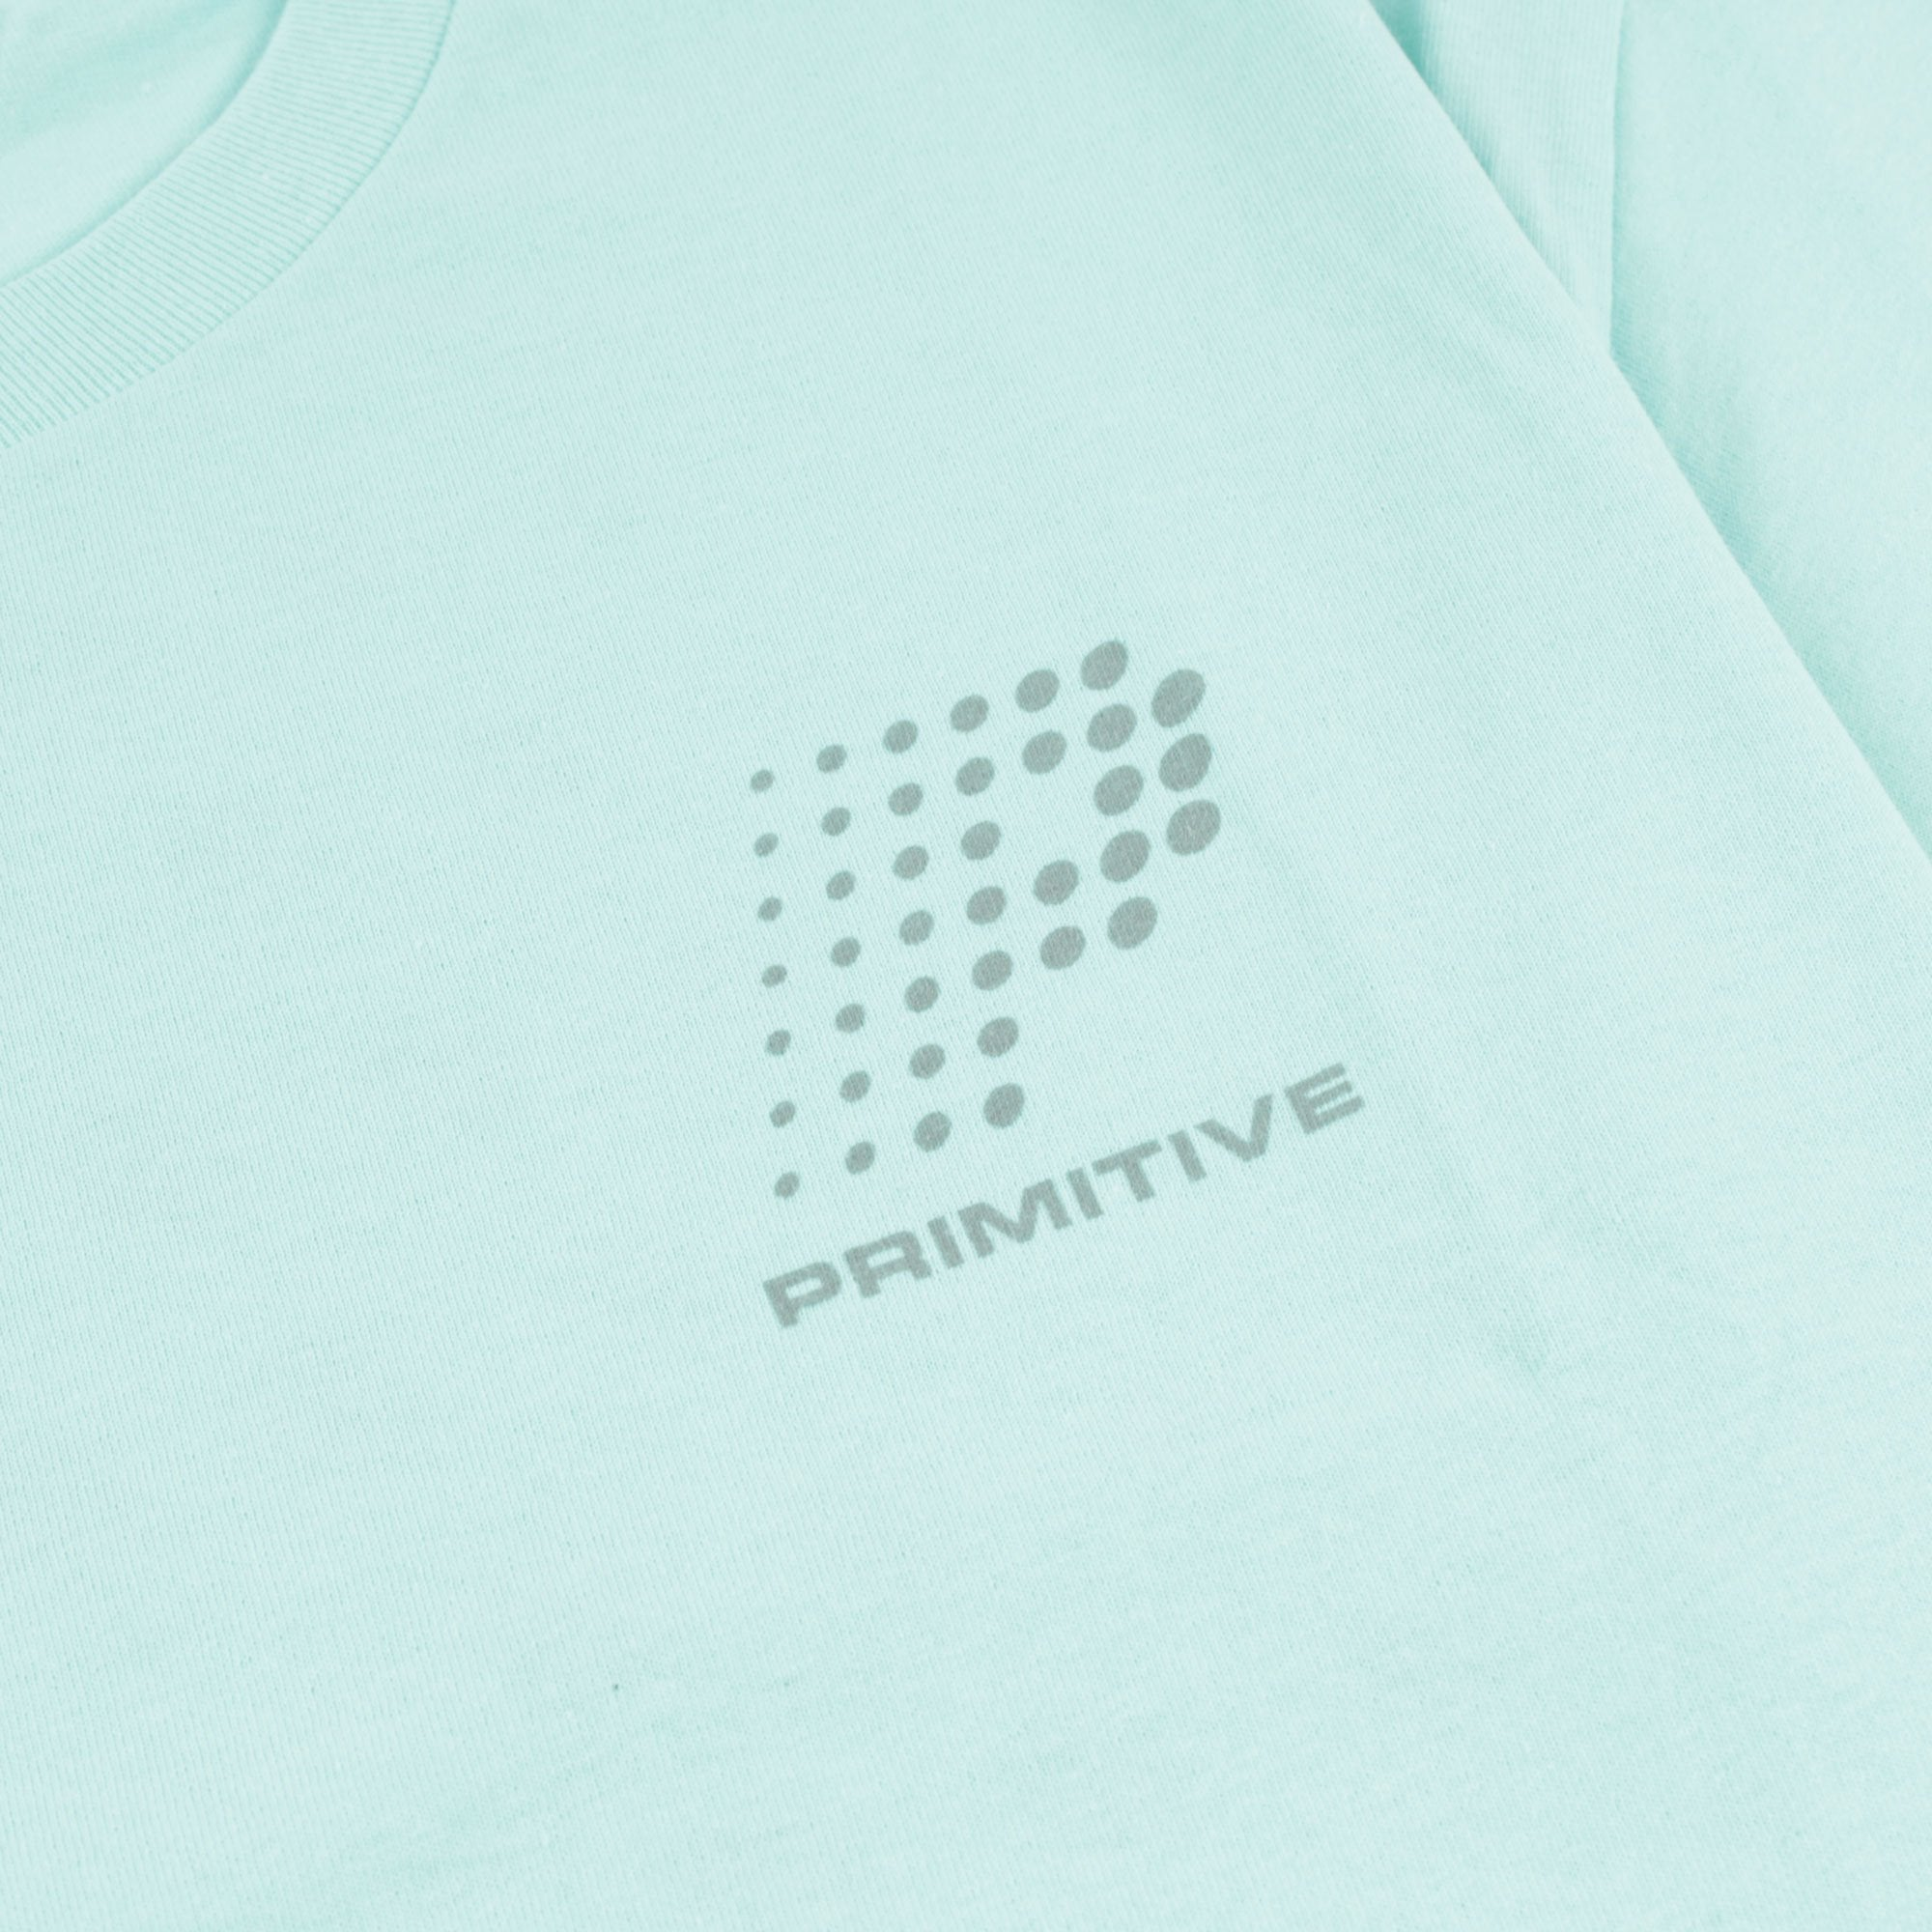 Primitive VHS Tee Product Photo #4